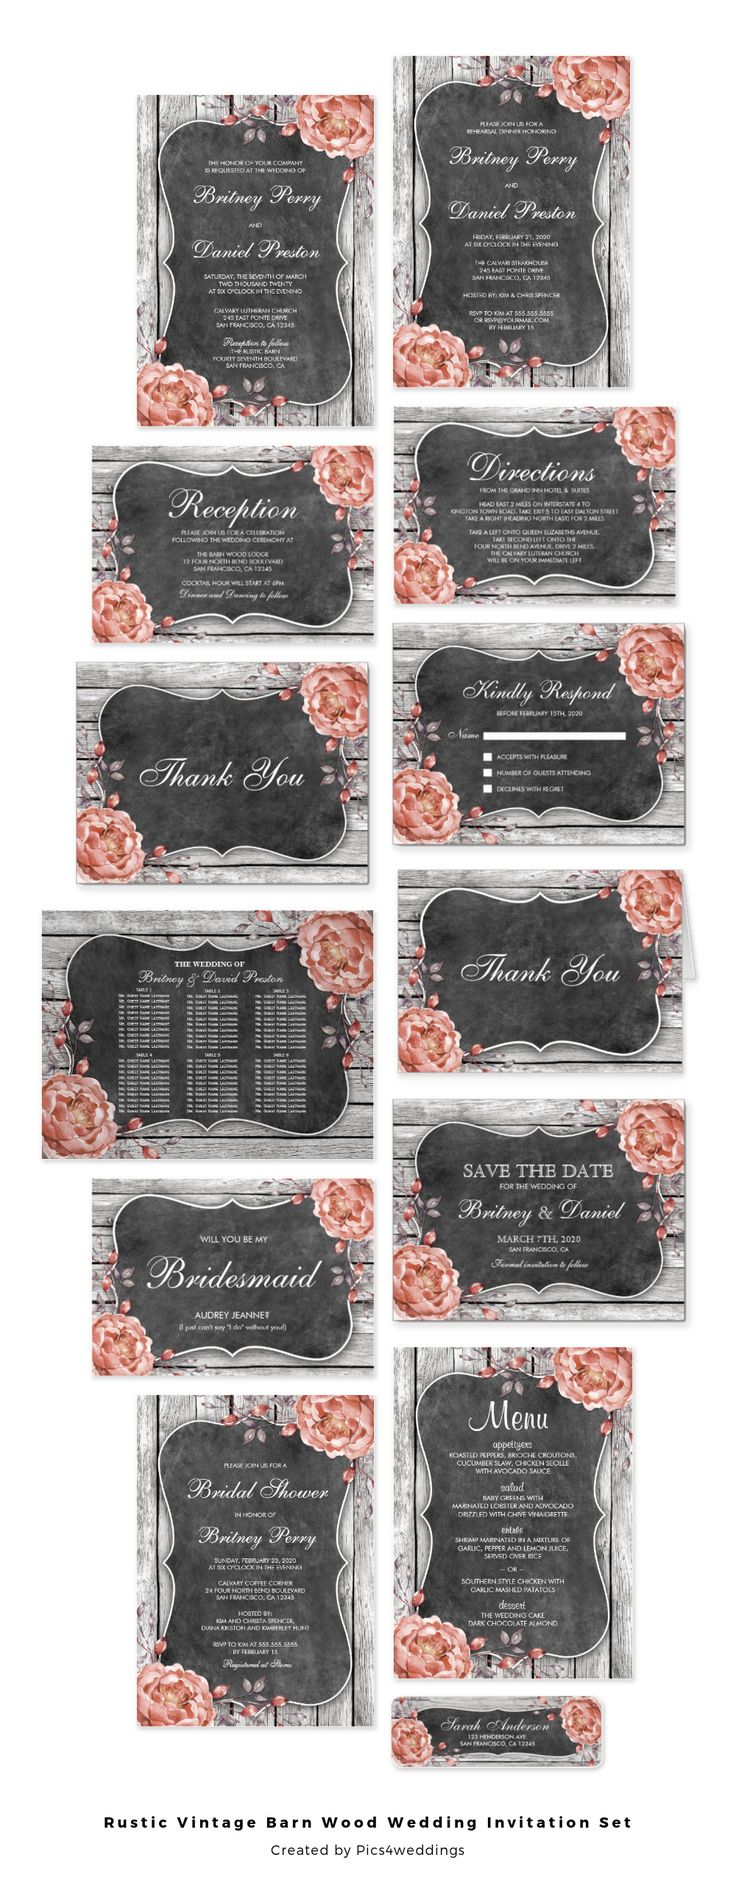 A rustic, vintage wedding invitation set. Featuring distressed charcoal barn wood planks with dusty pink watercolor peonies and a bracket shape chalkboard for the wording. Click on the image to see all available products for this wedding suite!